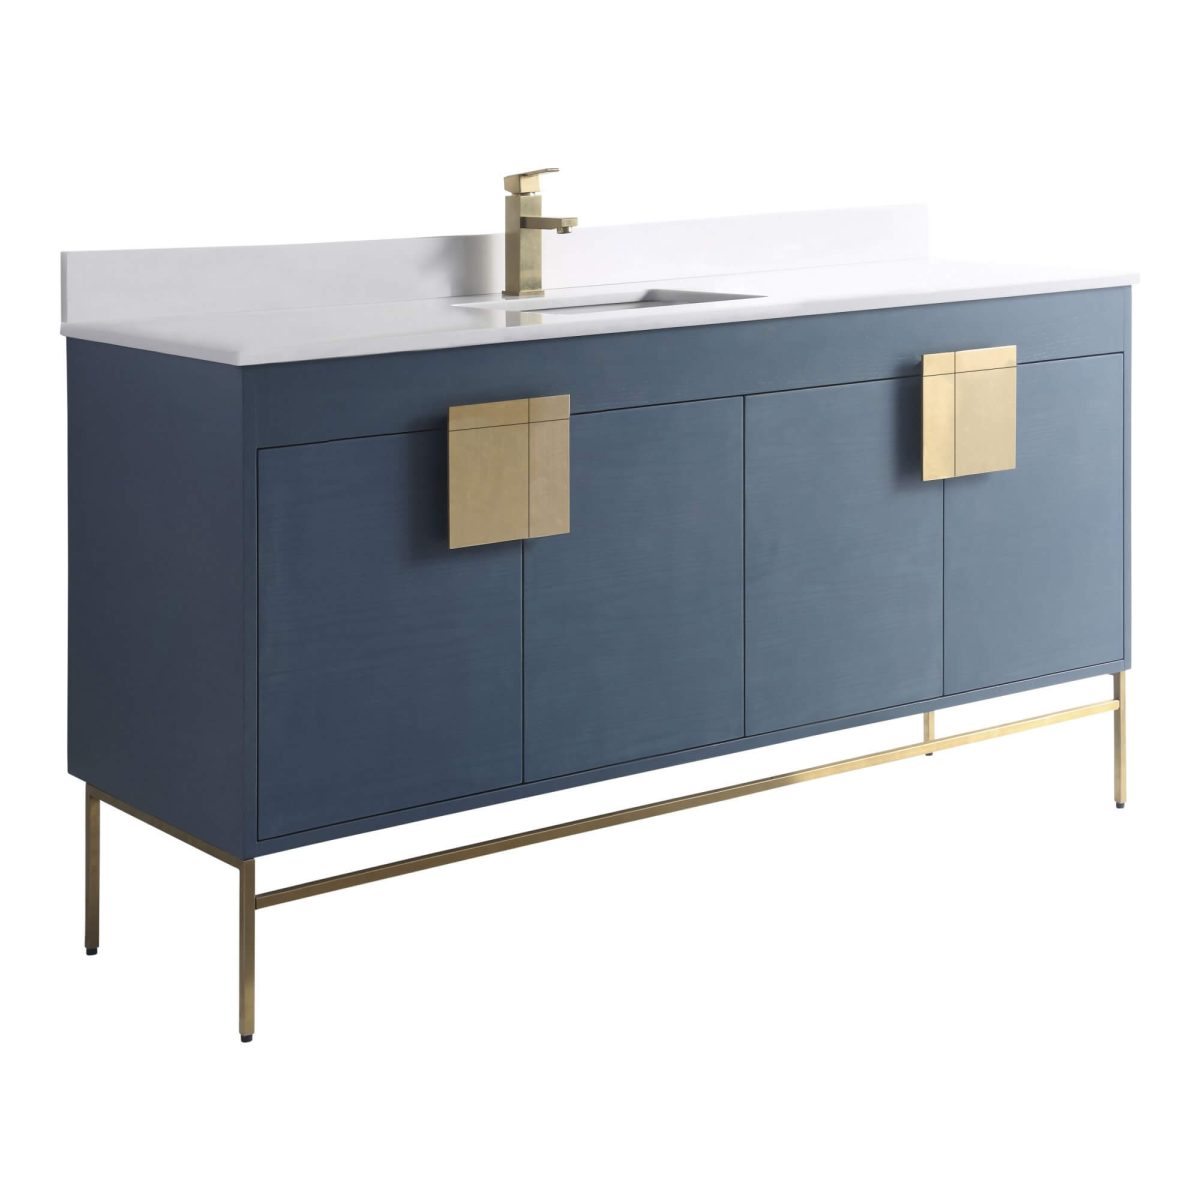 "Shawbridge 60"" Modern Single Bathroom Vanity  French Blue with Satin Brass Hardware"